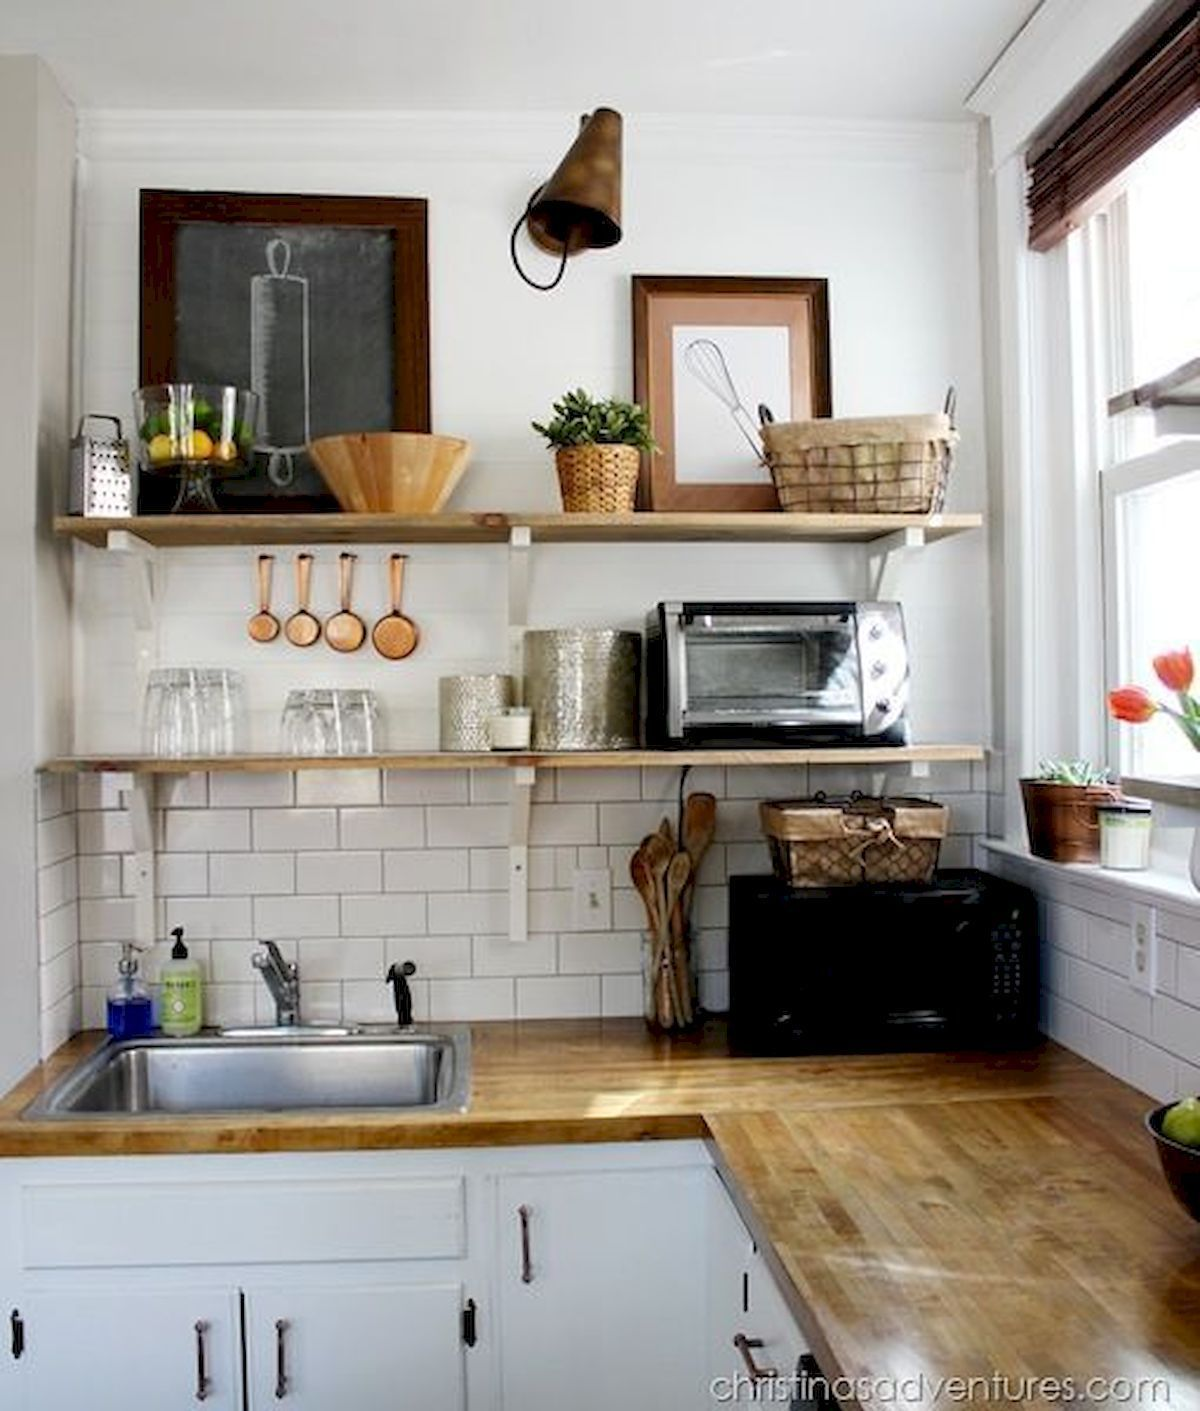 50 best small kitchen design ideas and decor 34 in 2019 the farm rh pinterest com